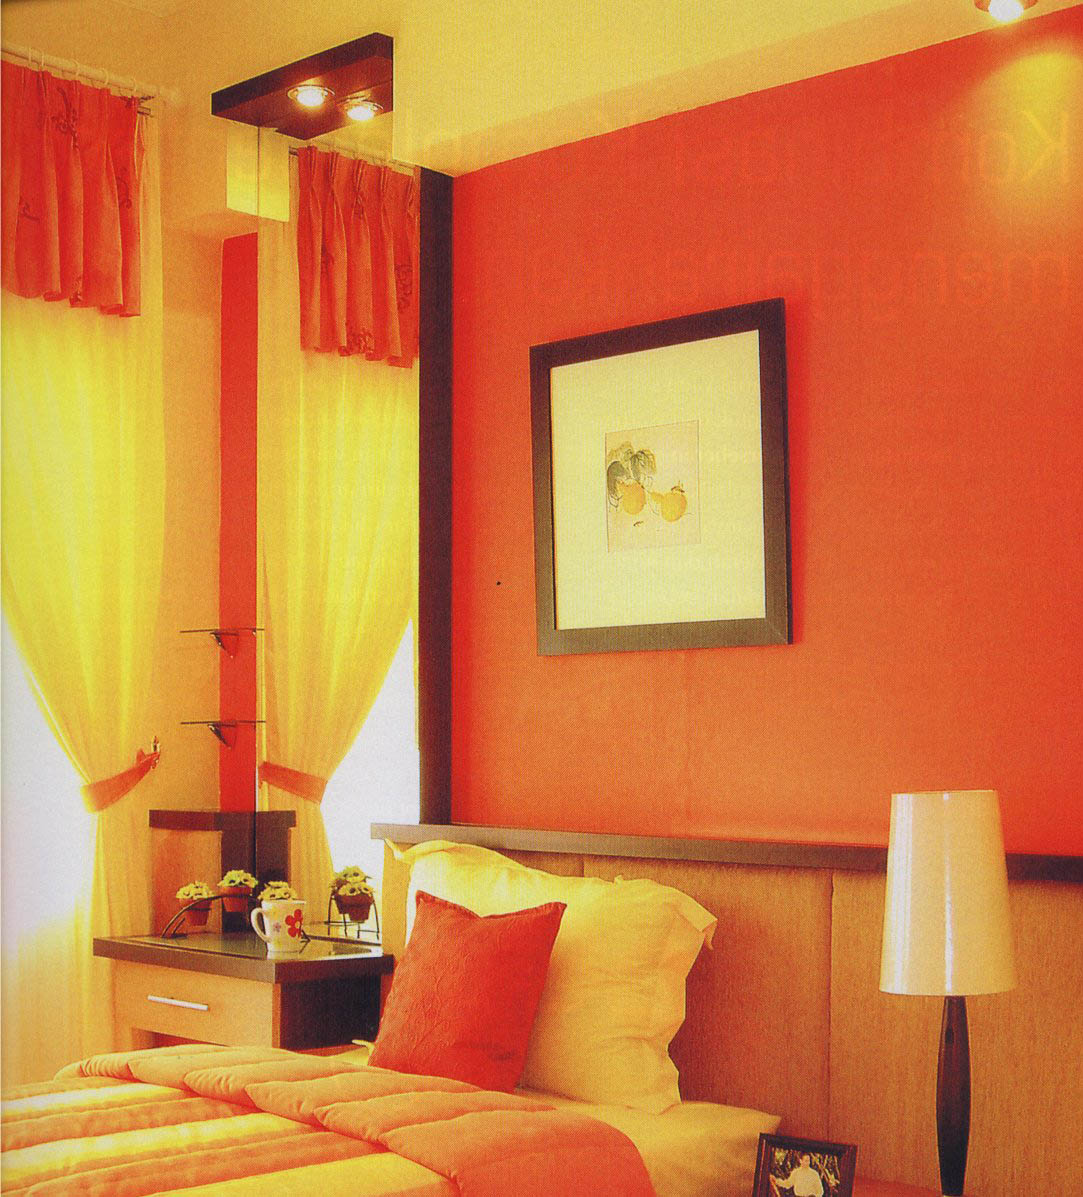 Bedroom painting ideas popular interior house ideas for Indoor paints color ideas